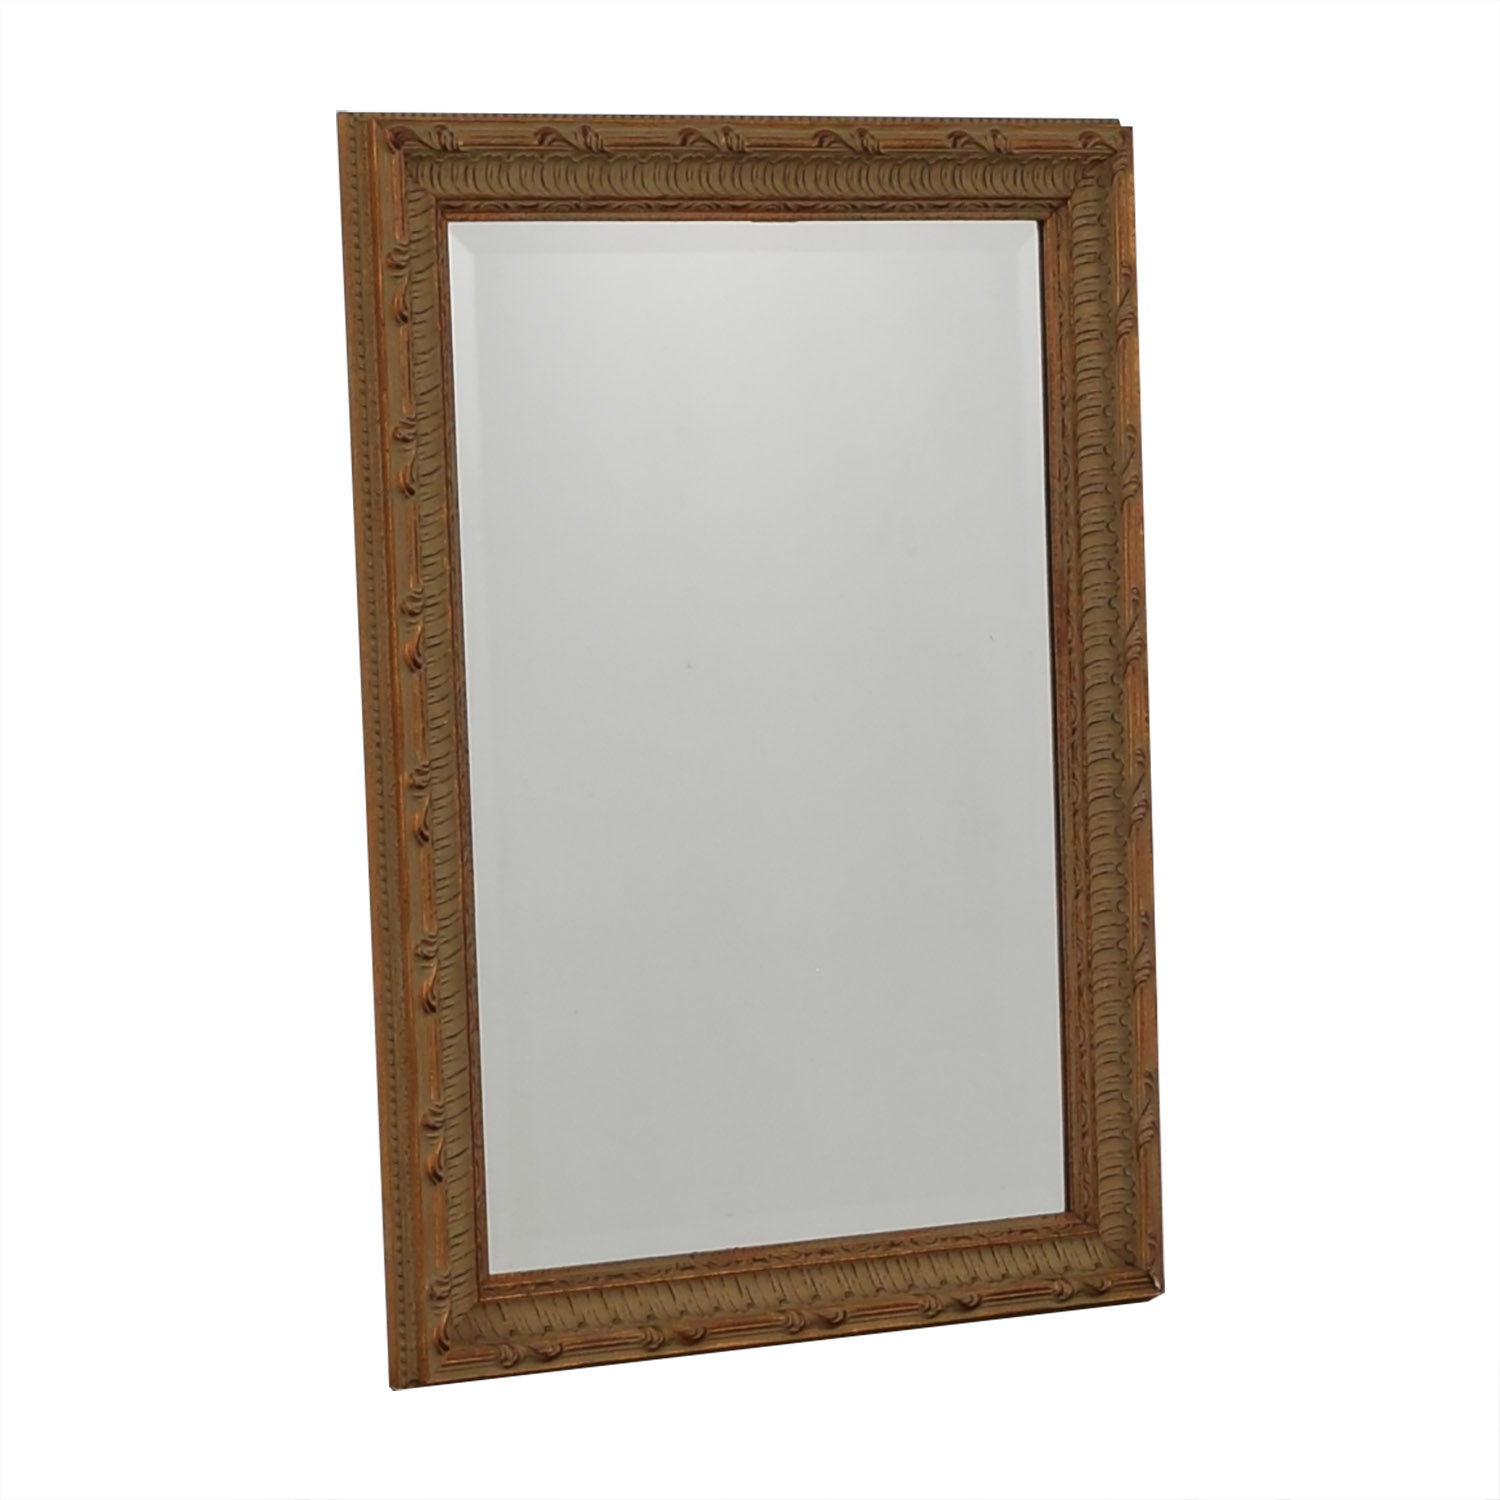 buy Ethan Allen Ethan Allen Worn Red and Beige Mirror online